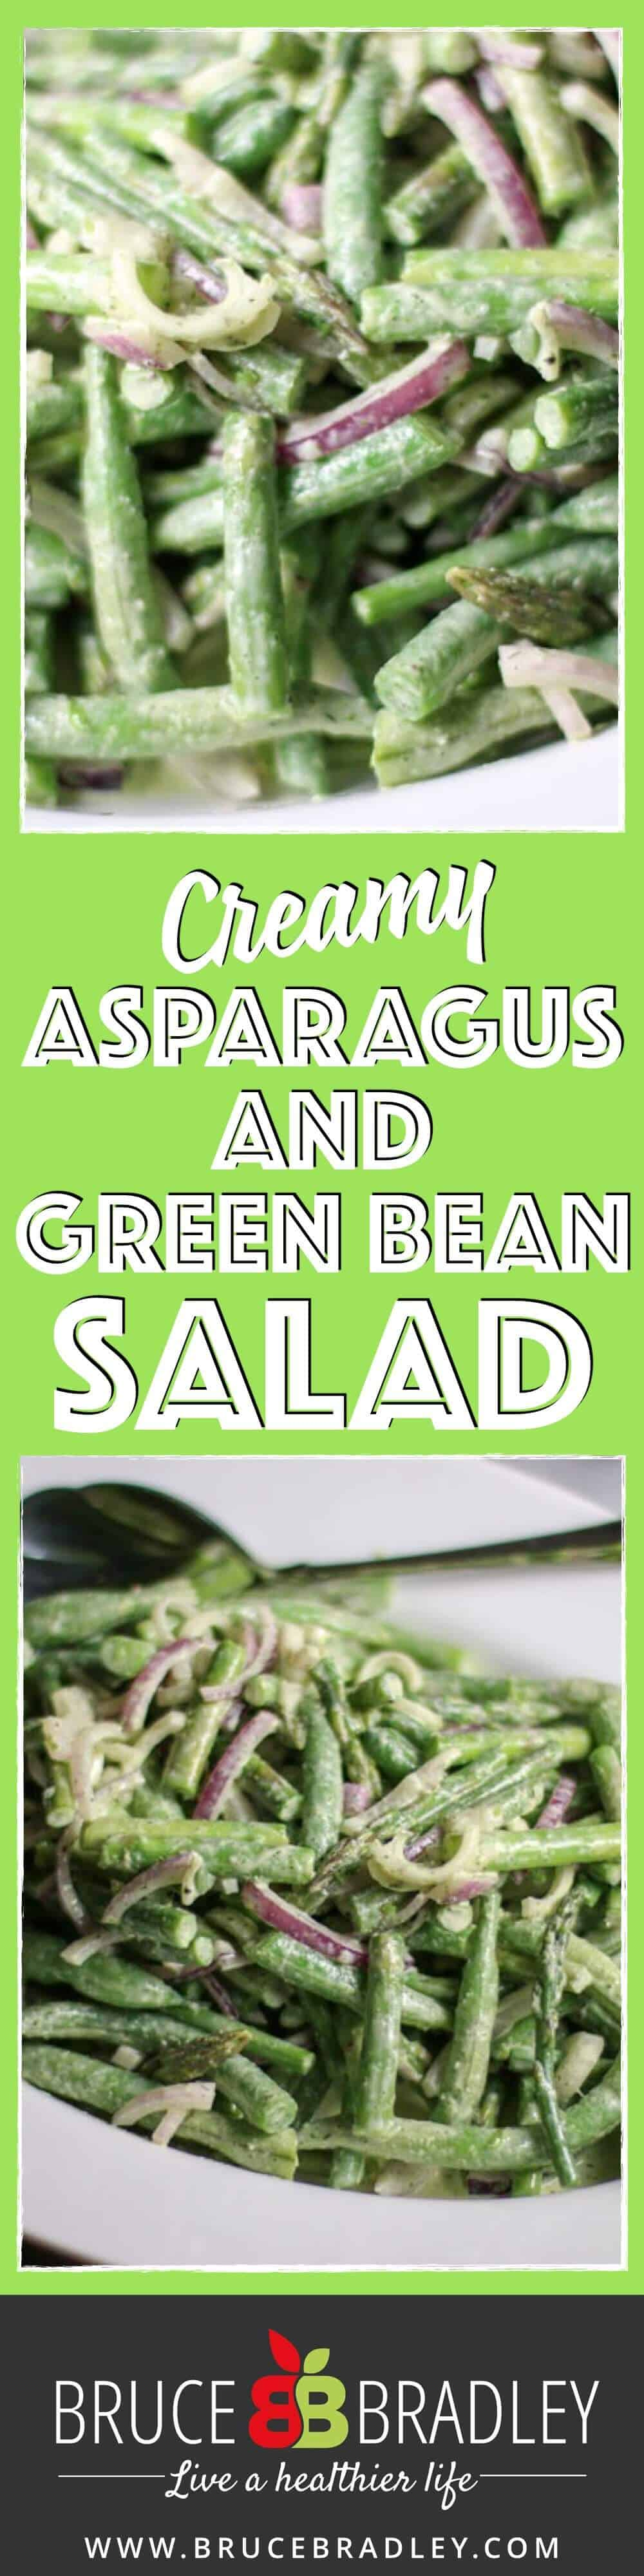 This Creamy Asparagus and Green Bean Salad proves that two great tastes can taste even better together! So delicious and easy, it's perfect for any night of the week!